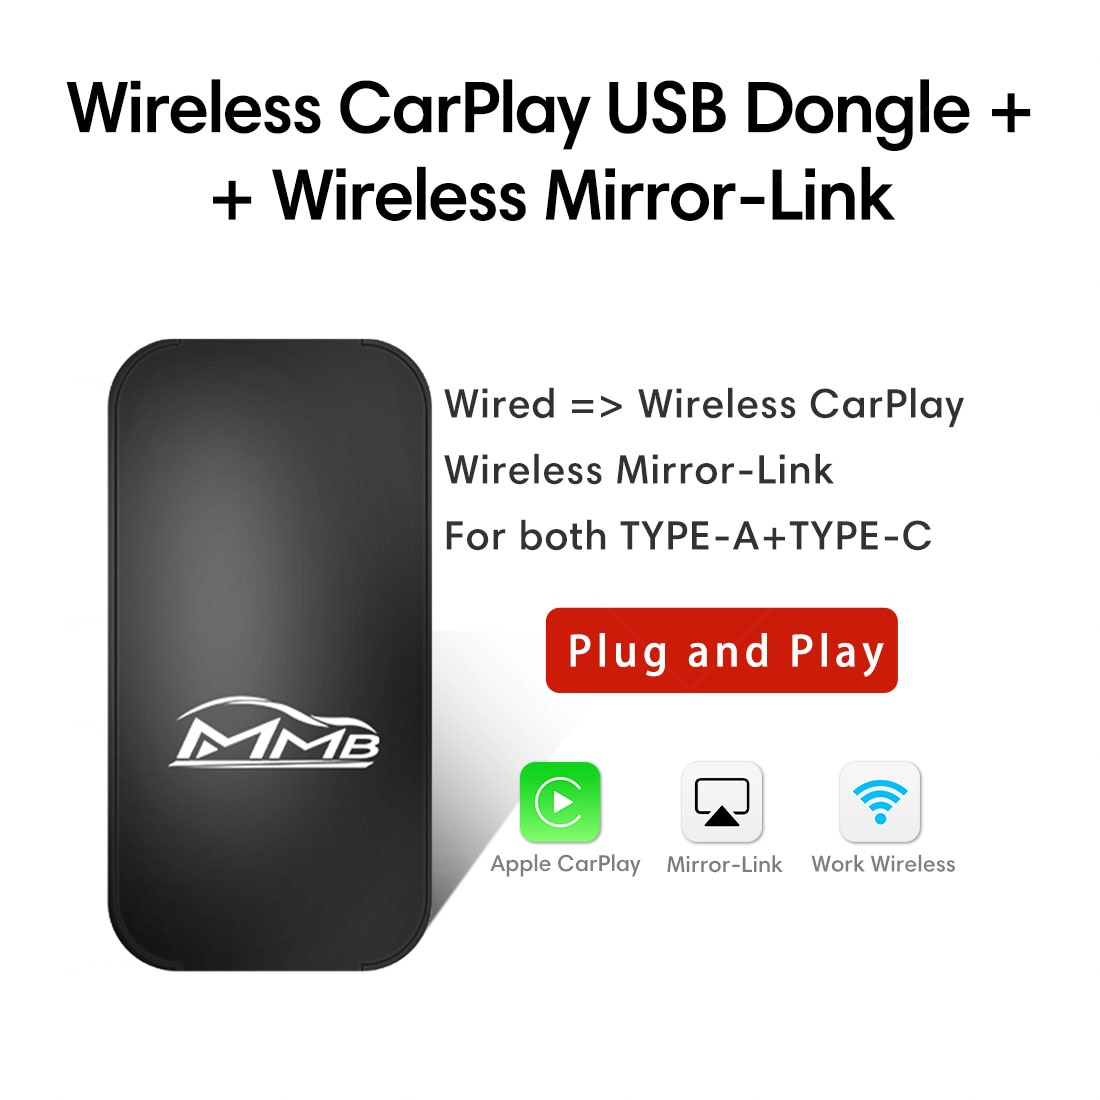 Review MMB USB Wireless Apple Carplay Smart Box AirPlay iOS Android Mirror link Video Player Multimedia Plug And Play Dongle Adapter